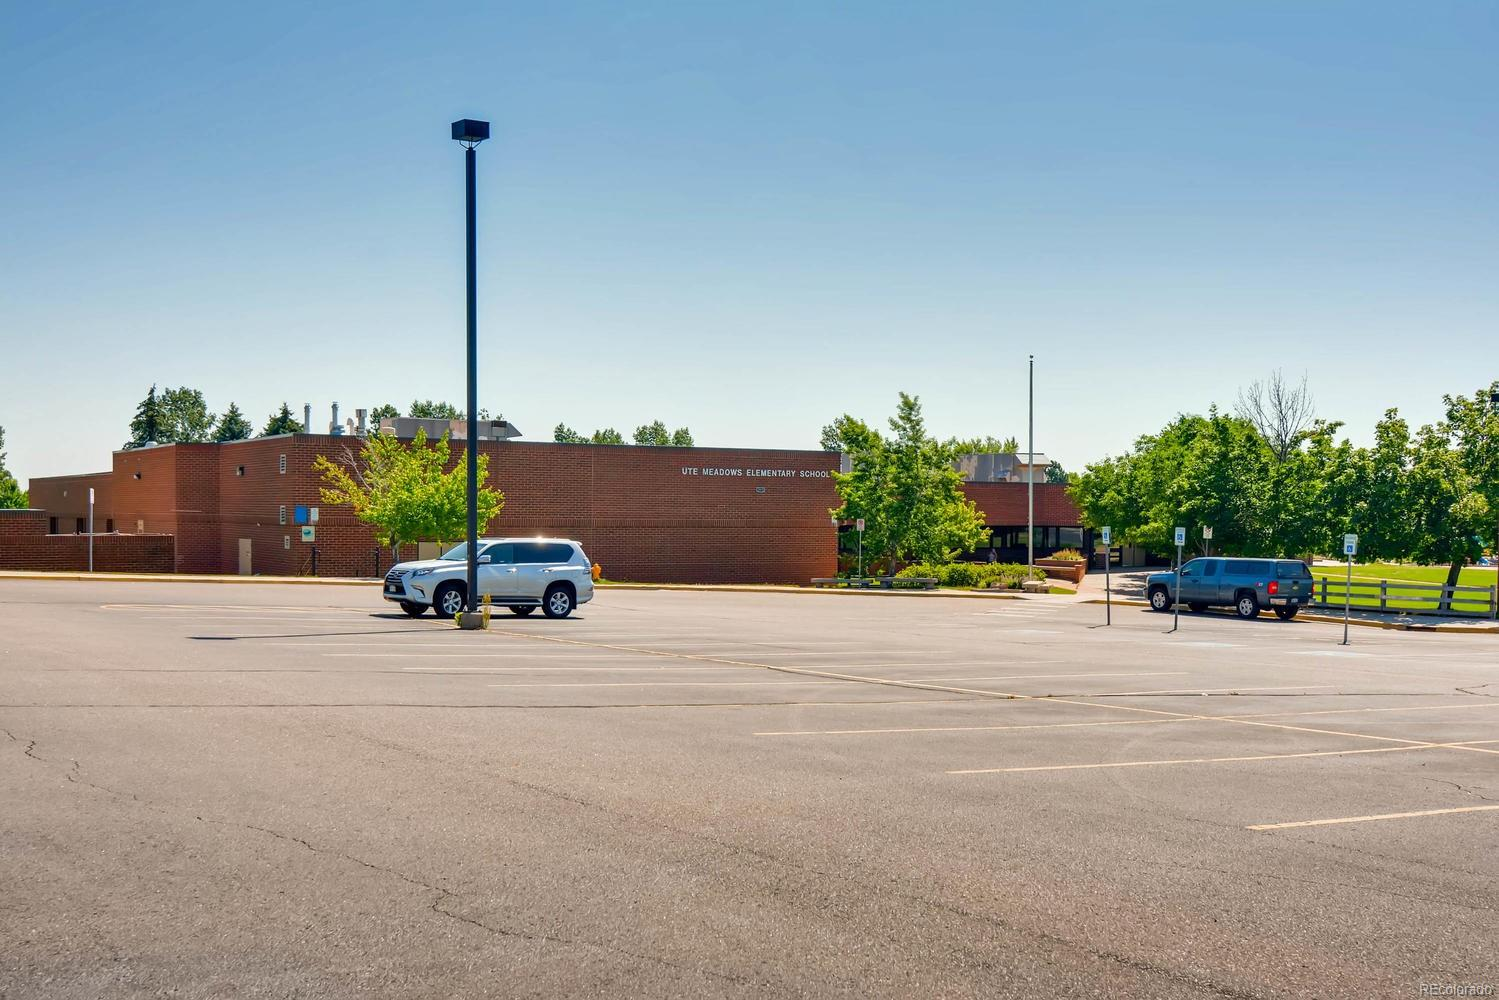 Ute Meadows Elementary School is only 2 blocks from this home.